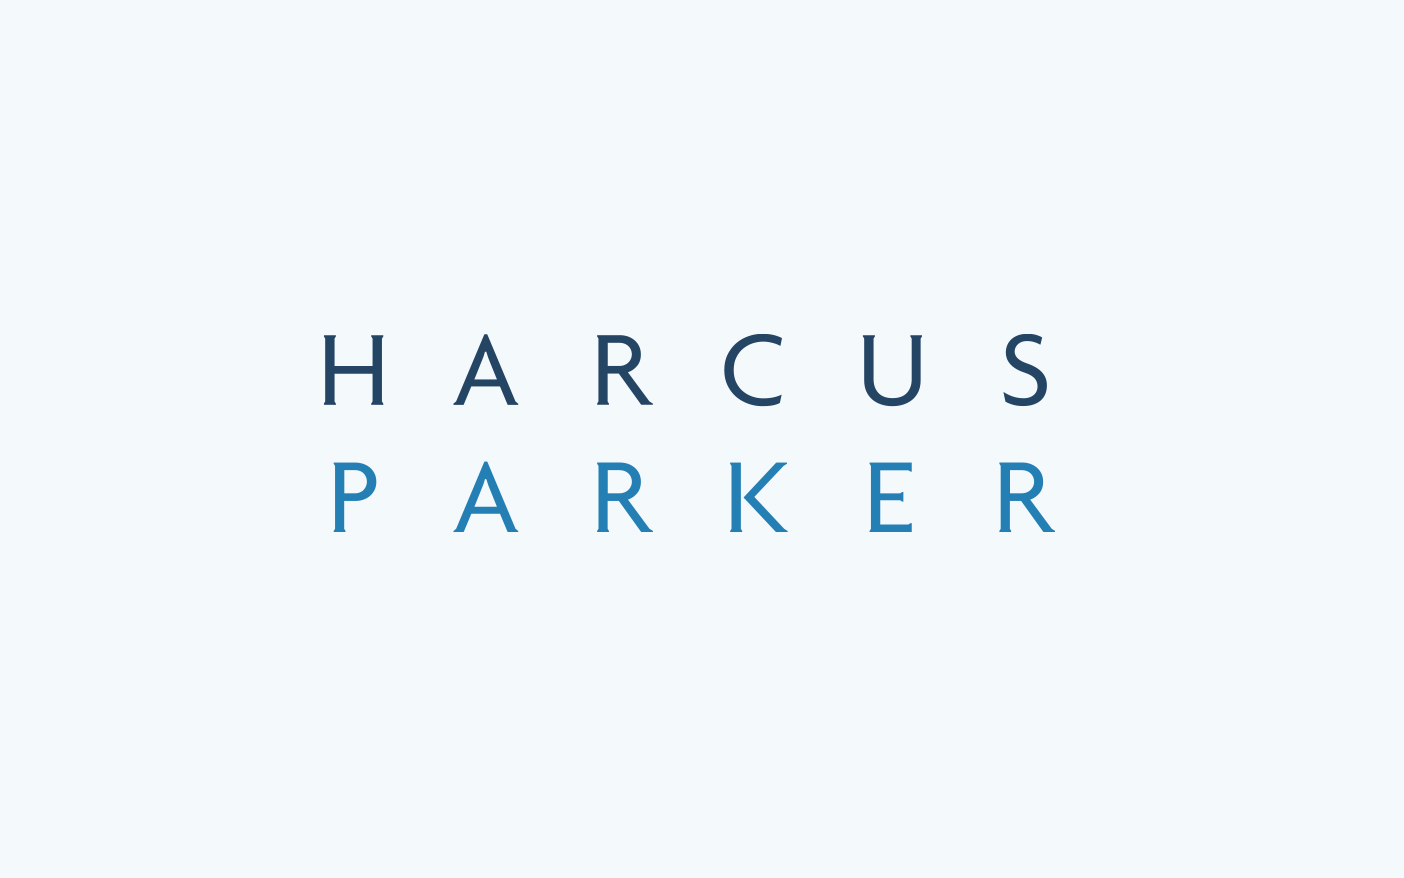 Harcus Parker wins major victory for Harbour Litigation Funding and others in long-running commercial fraud claim